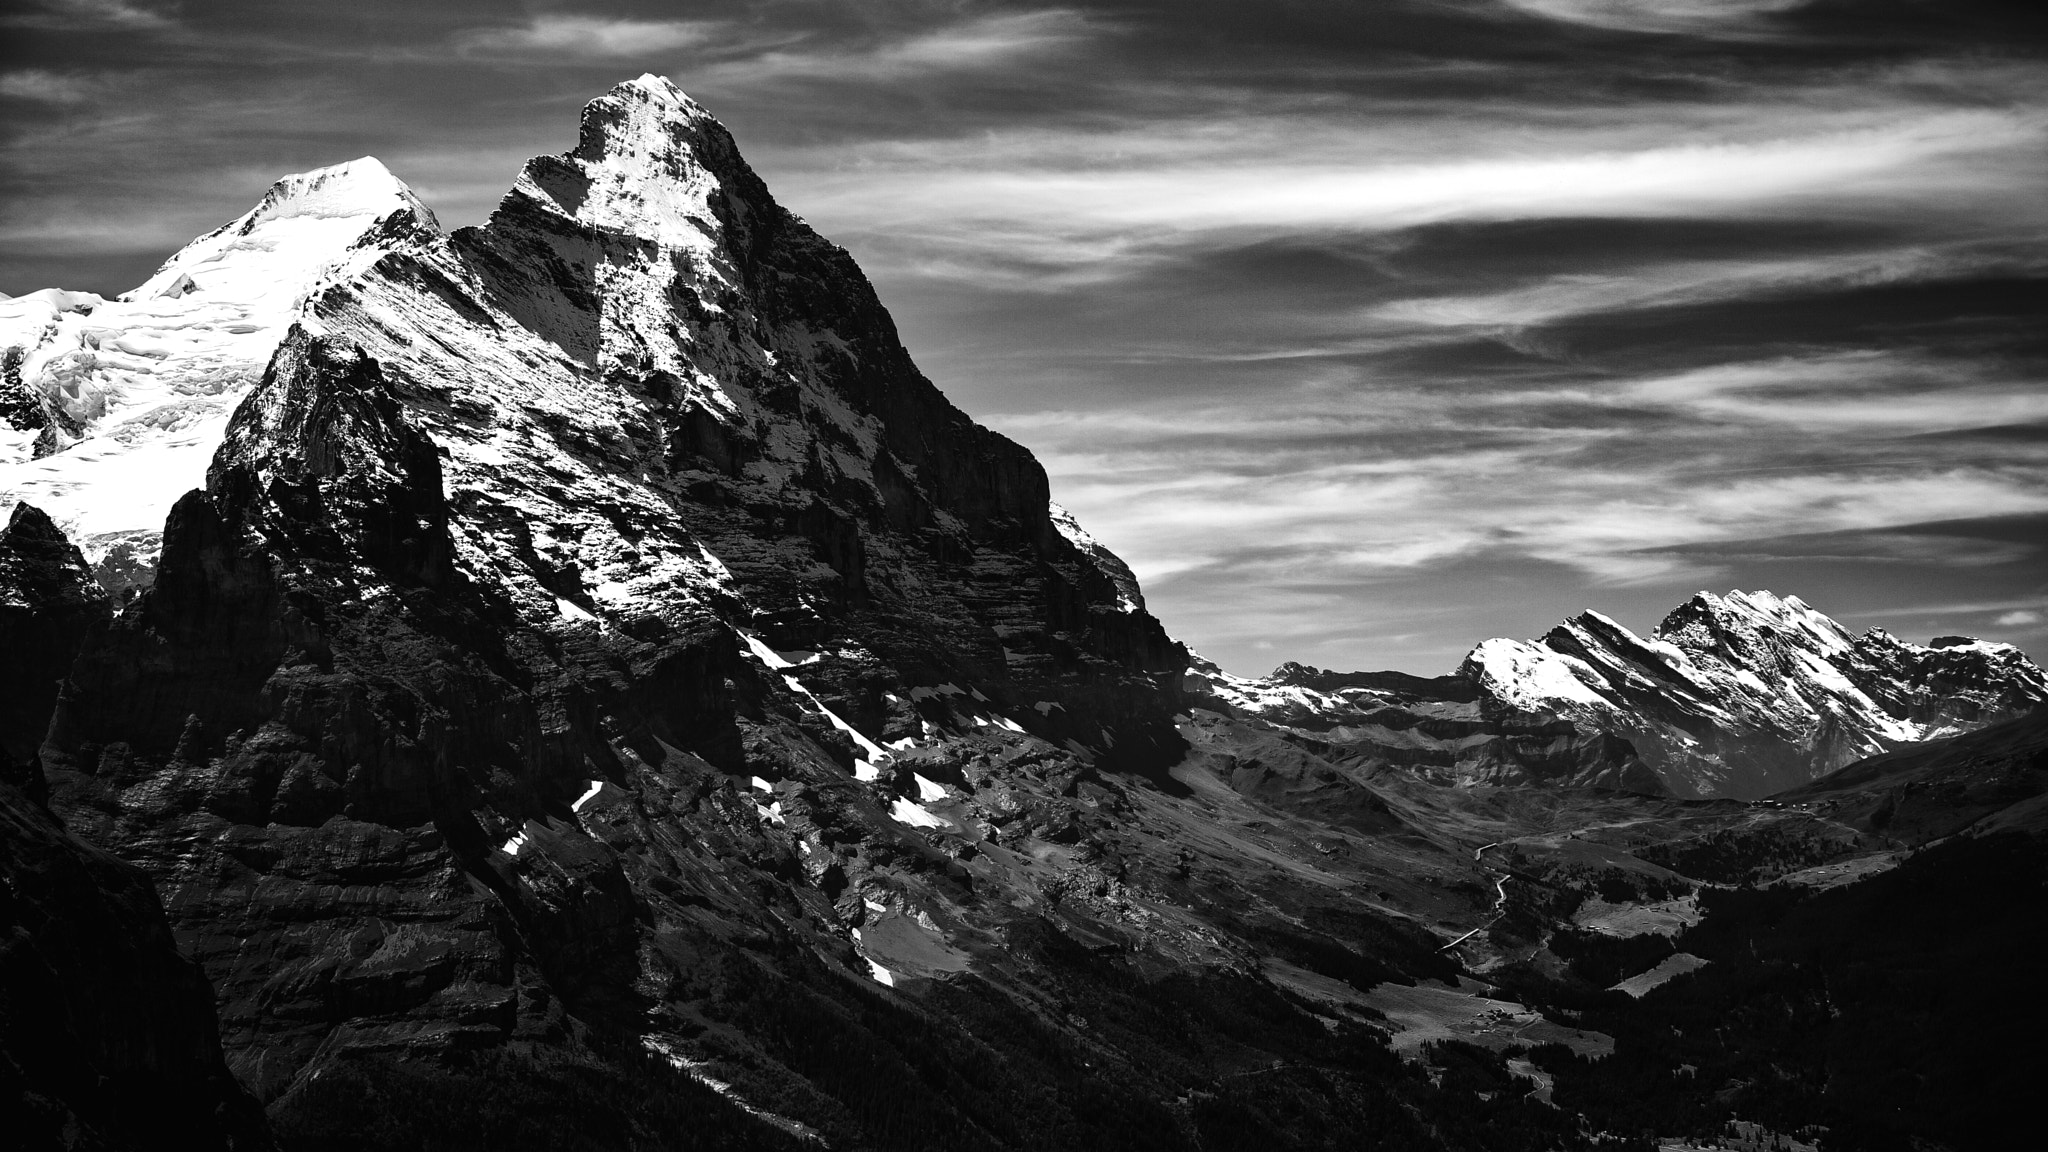 Photograph North face of the Eiger by Hannes Ortmann on 500px